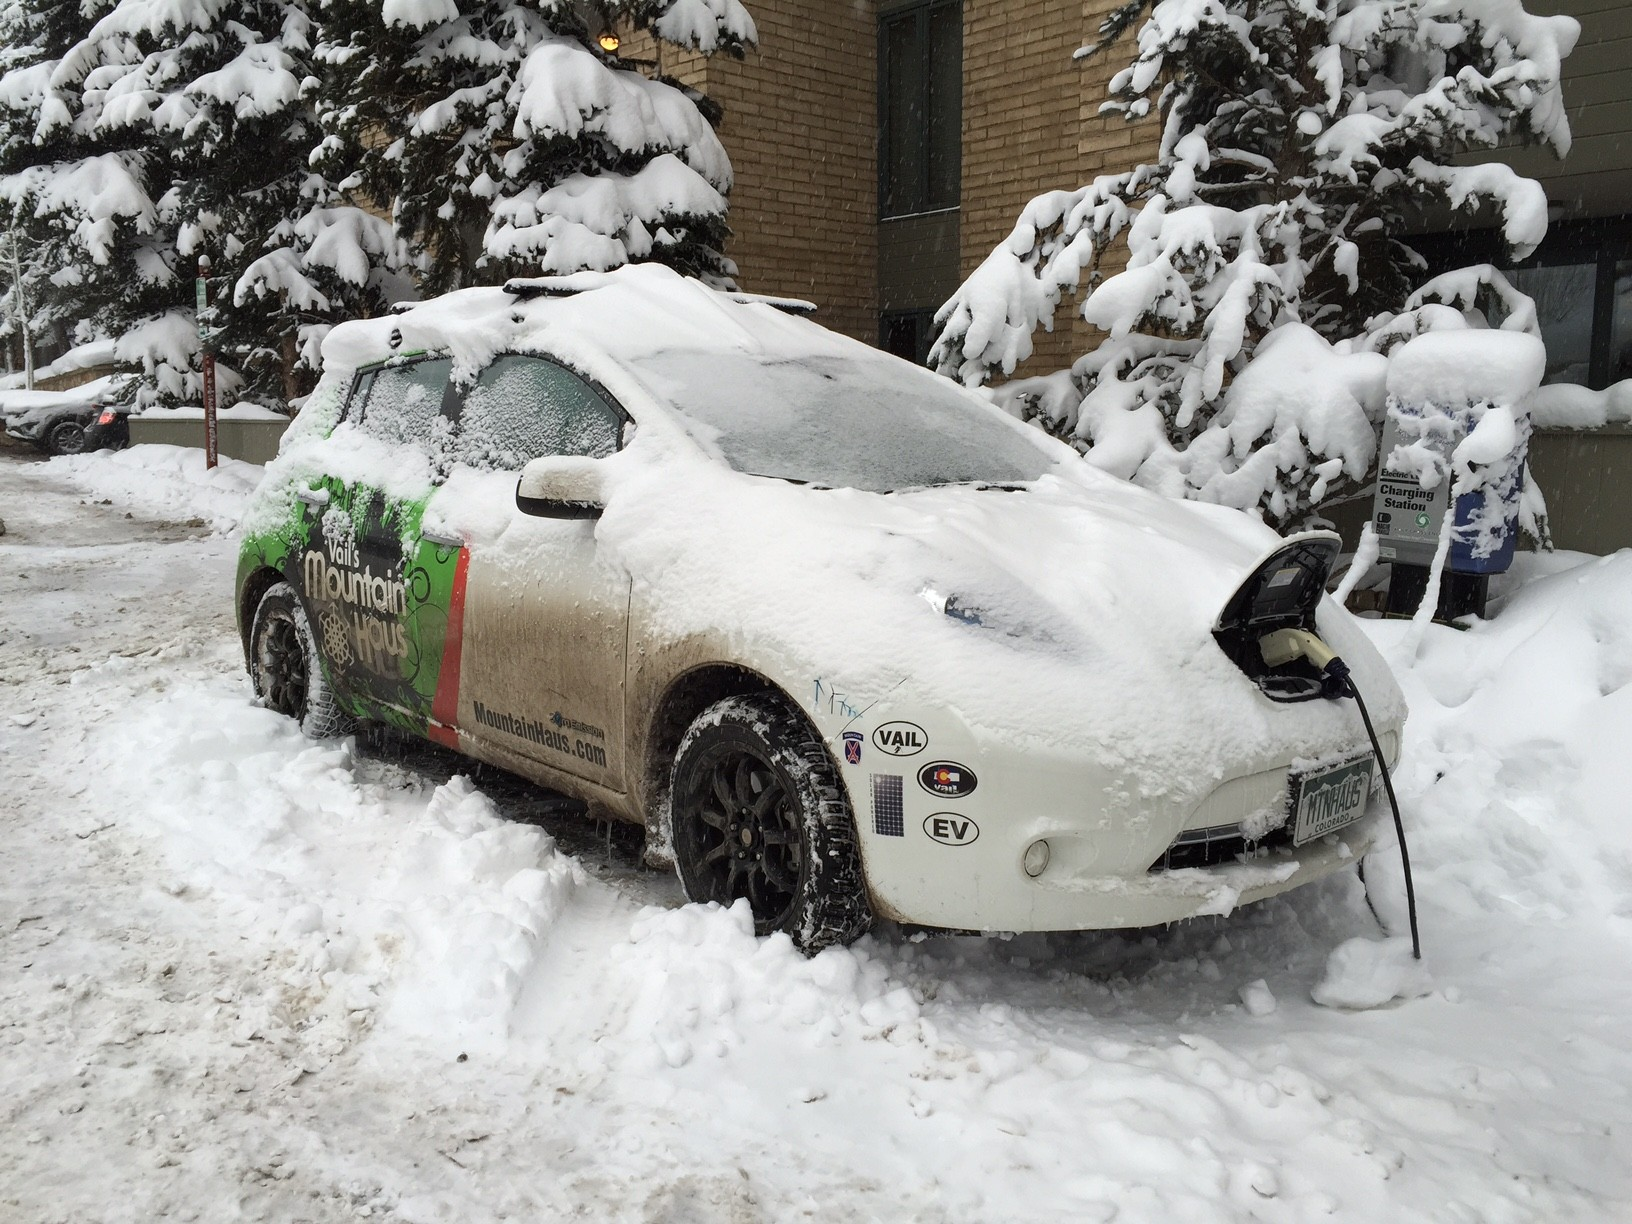 A photo of an electric vehicle charging in the snow.